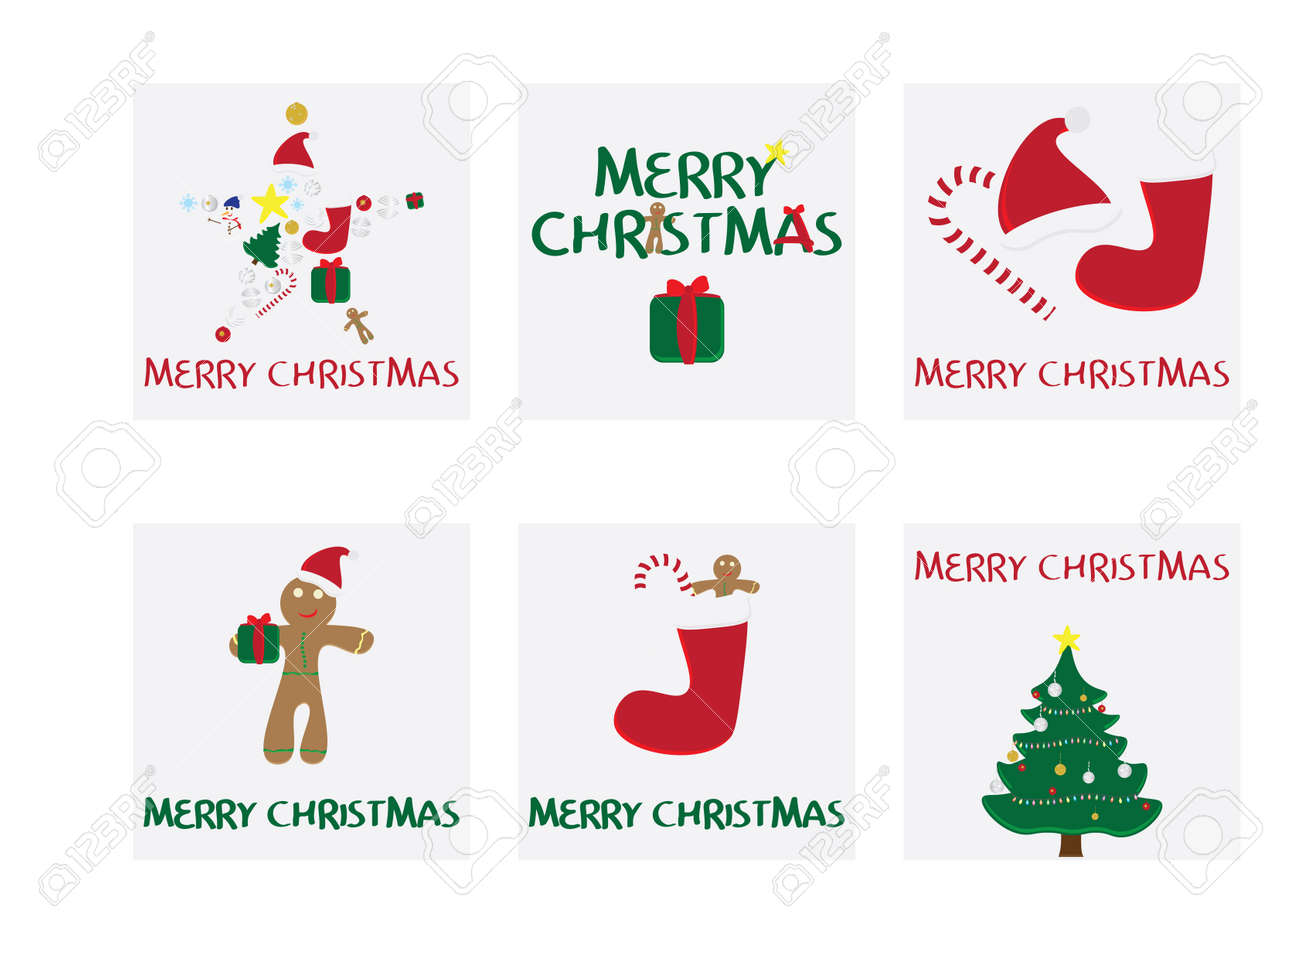 Merry Christmas Gift Tags.Set Of 6 Christmas Cards Merry Christmas Card With Vector Illustrations